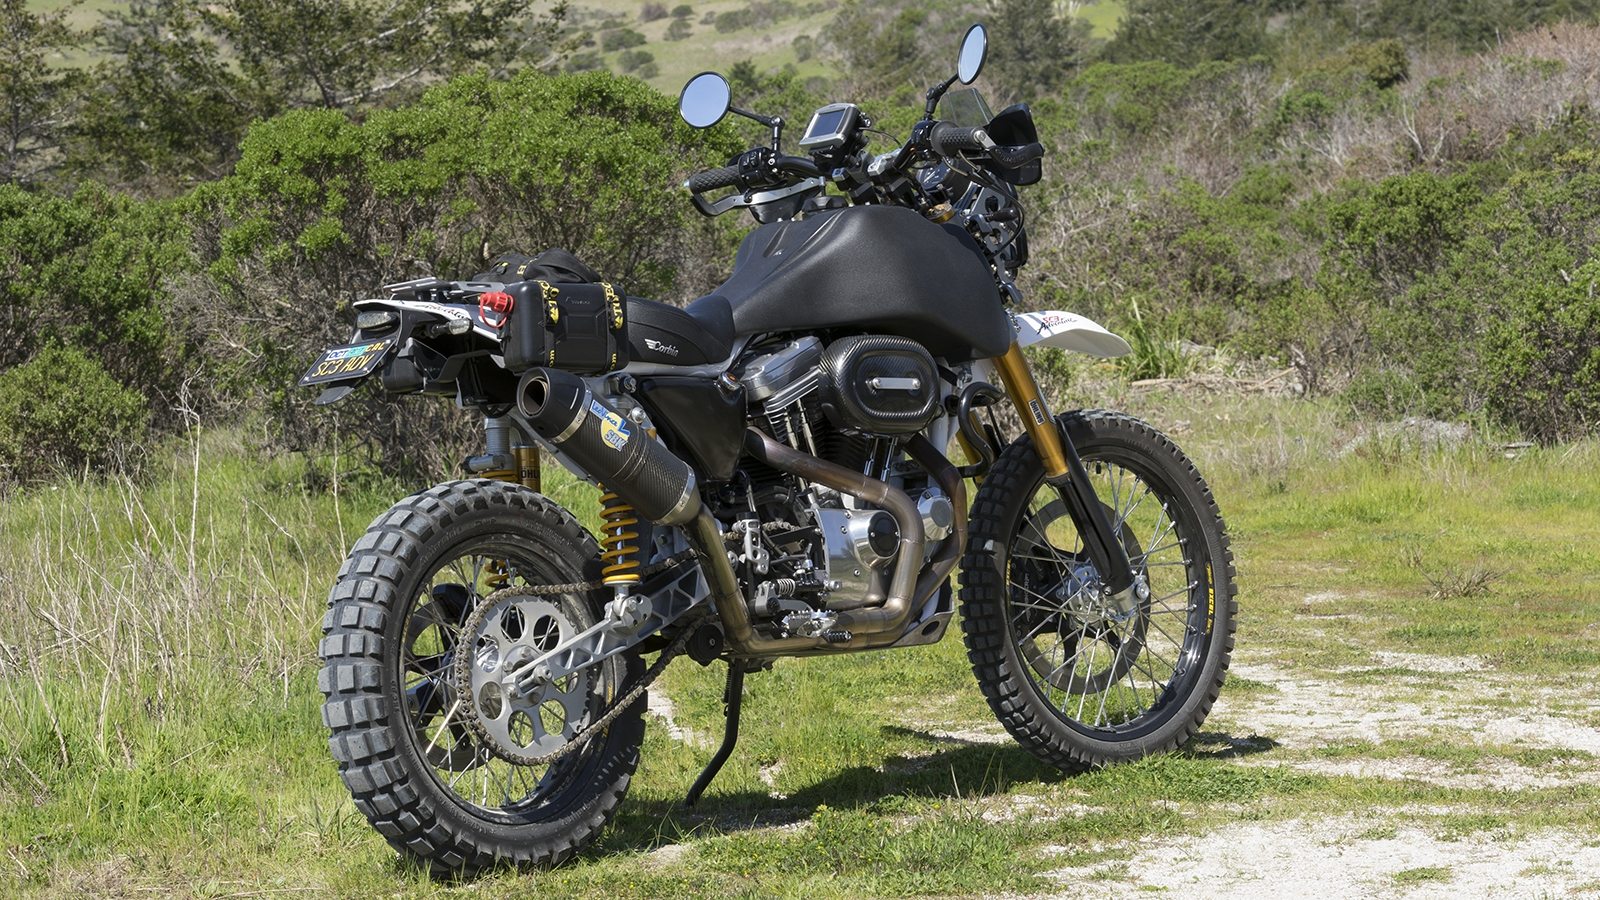 SC3 Adventure Dual Sport Motorcycle Off Whitehouse Road RHS. Photo by Sherry Cordova